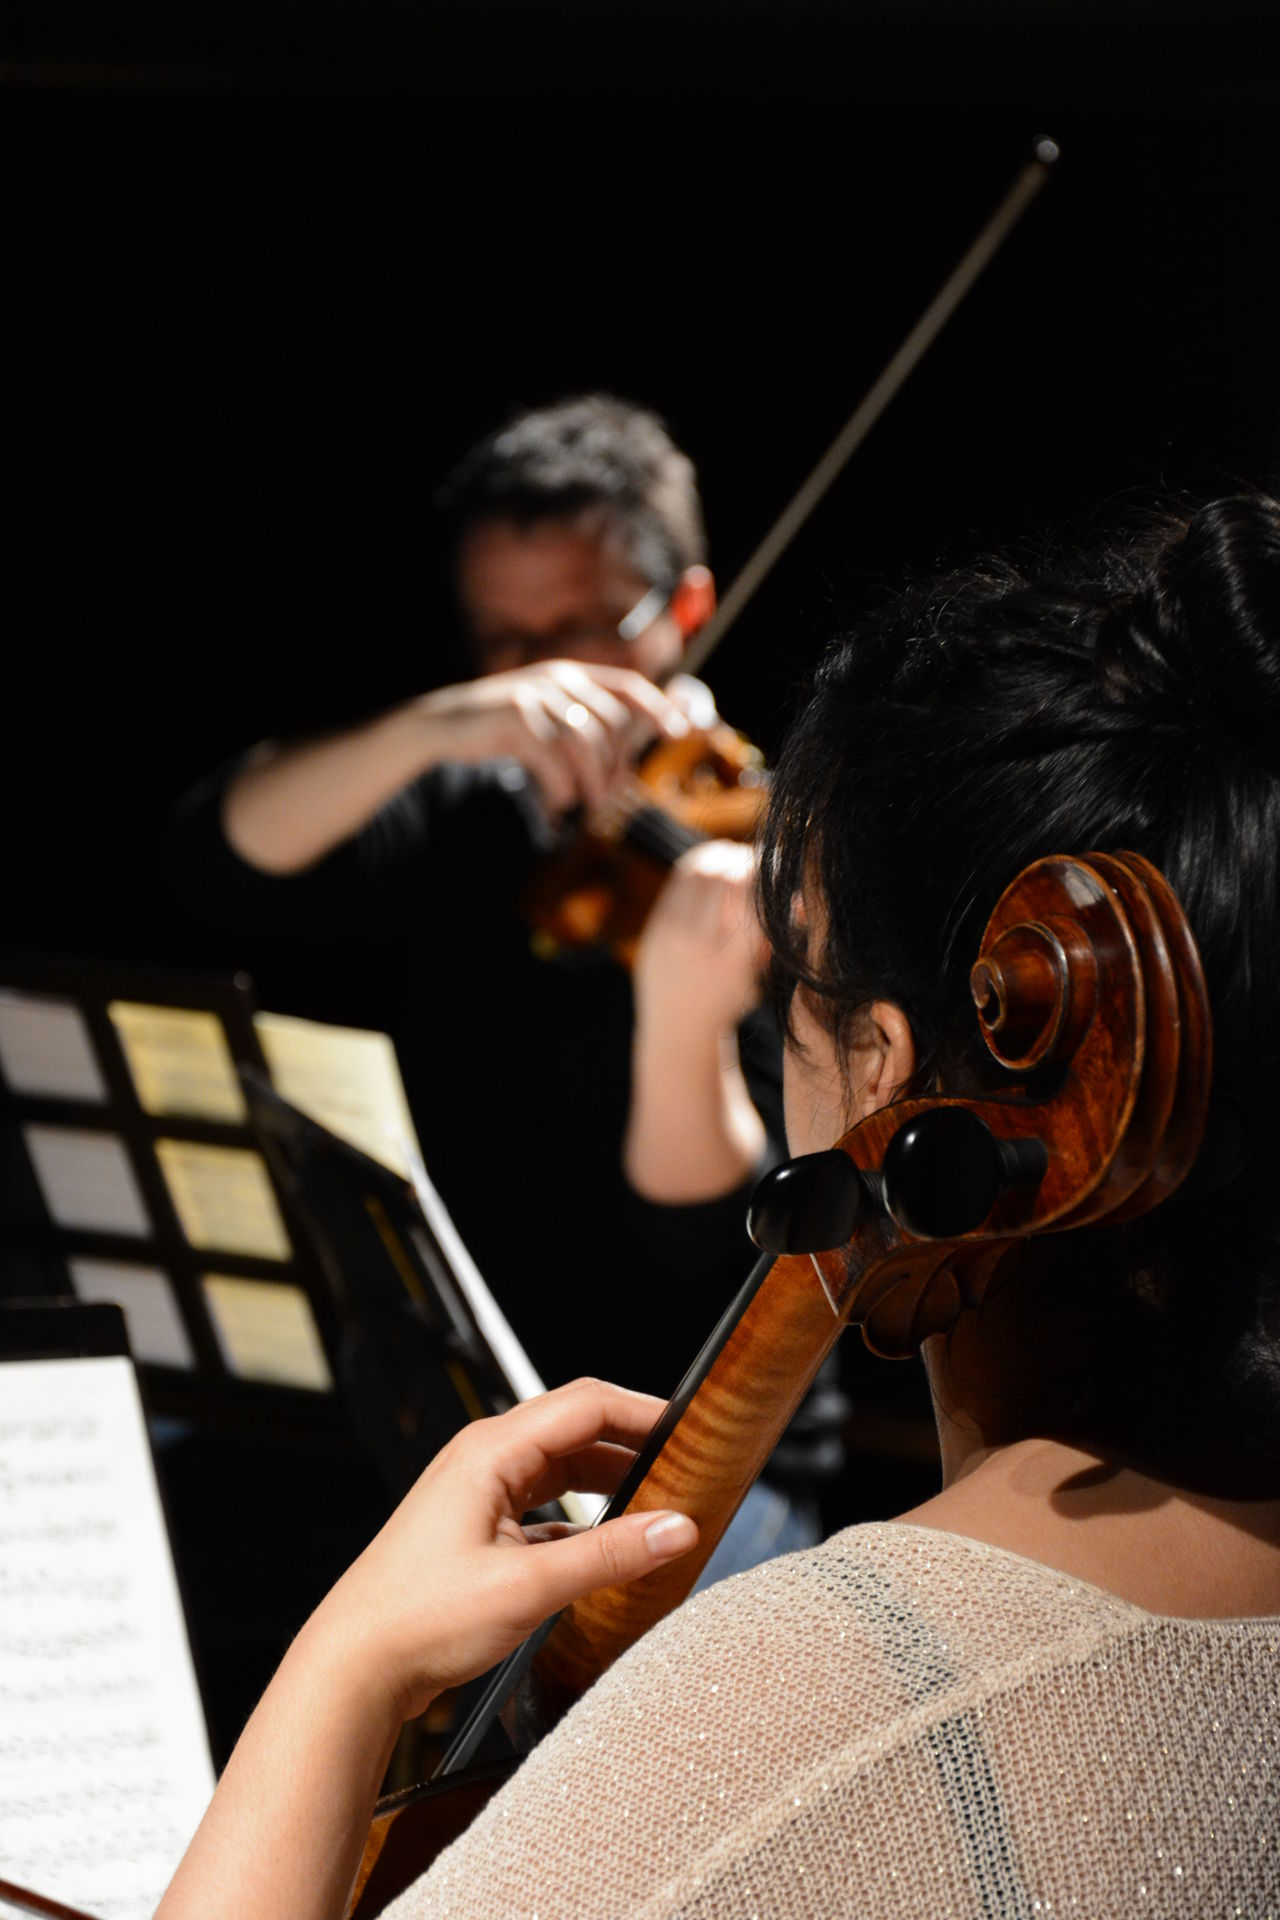 musicians playing the Cello and Violin together Arm Cello Classical Classical Music Duet Female Instrument Instruments Live Live Music Male Music Music Is My Life Musician Musicians Performance Performance Art Performing Photo Photography Stock Stockphoto Teamwork Violin Violinist